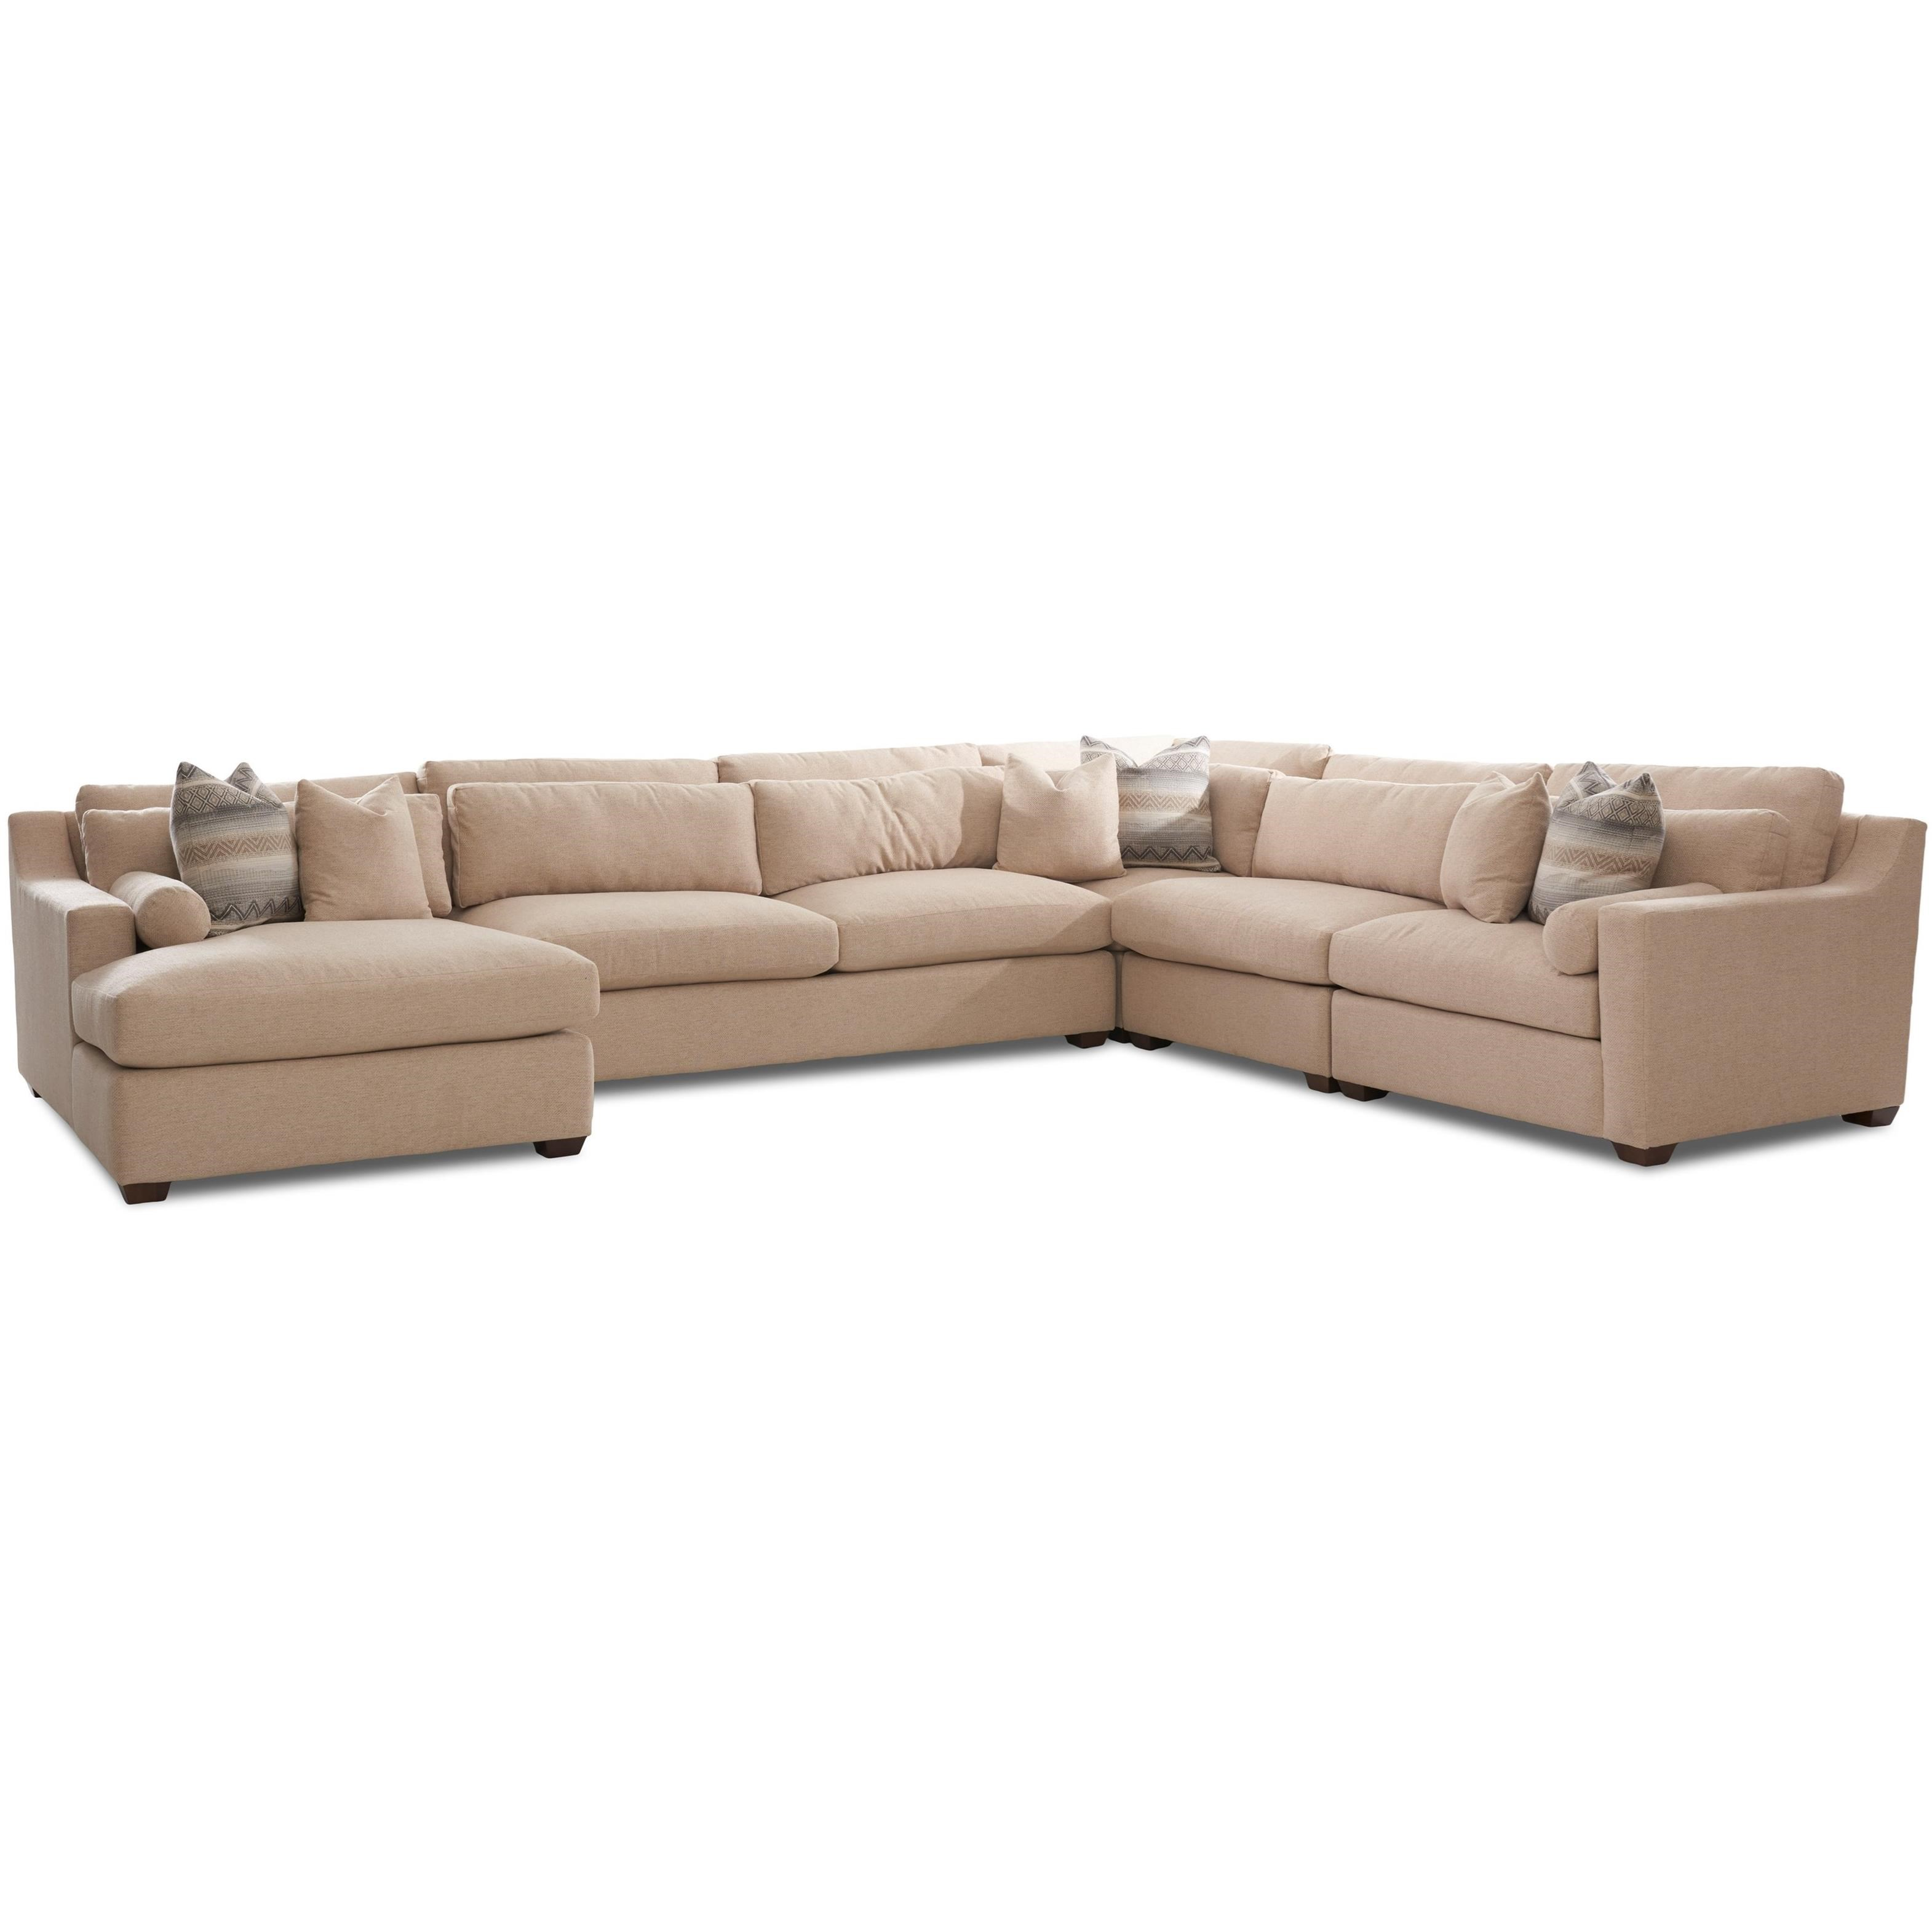 Contemporary Sofa Sectional with Left Facing Chaise Lounge